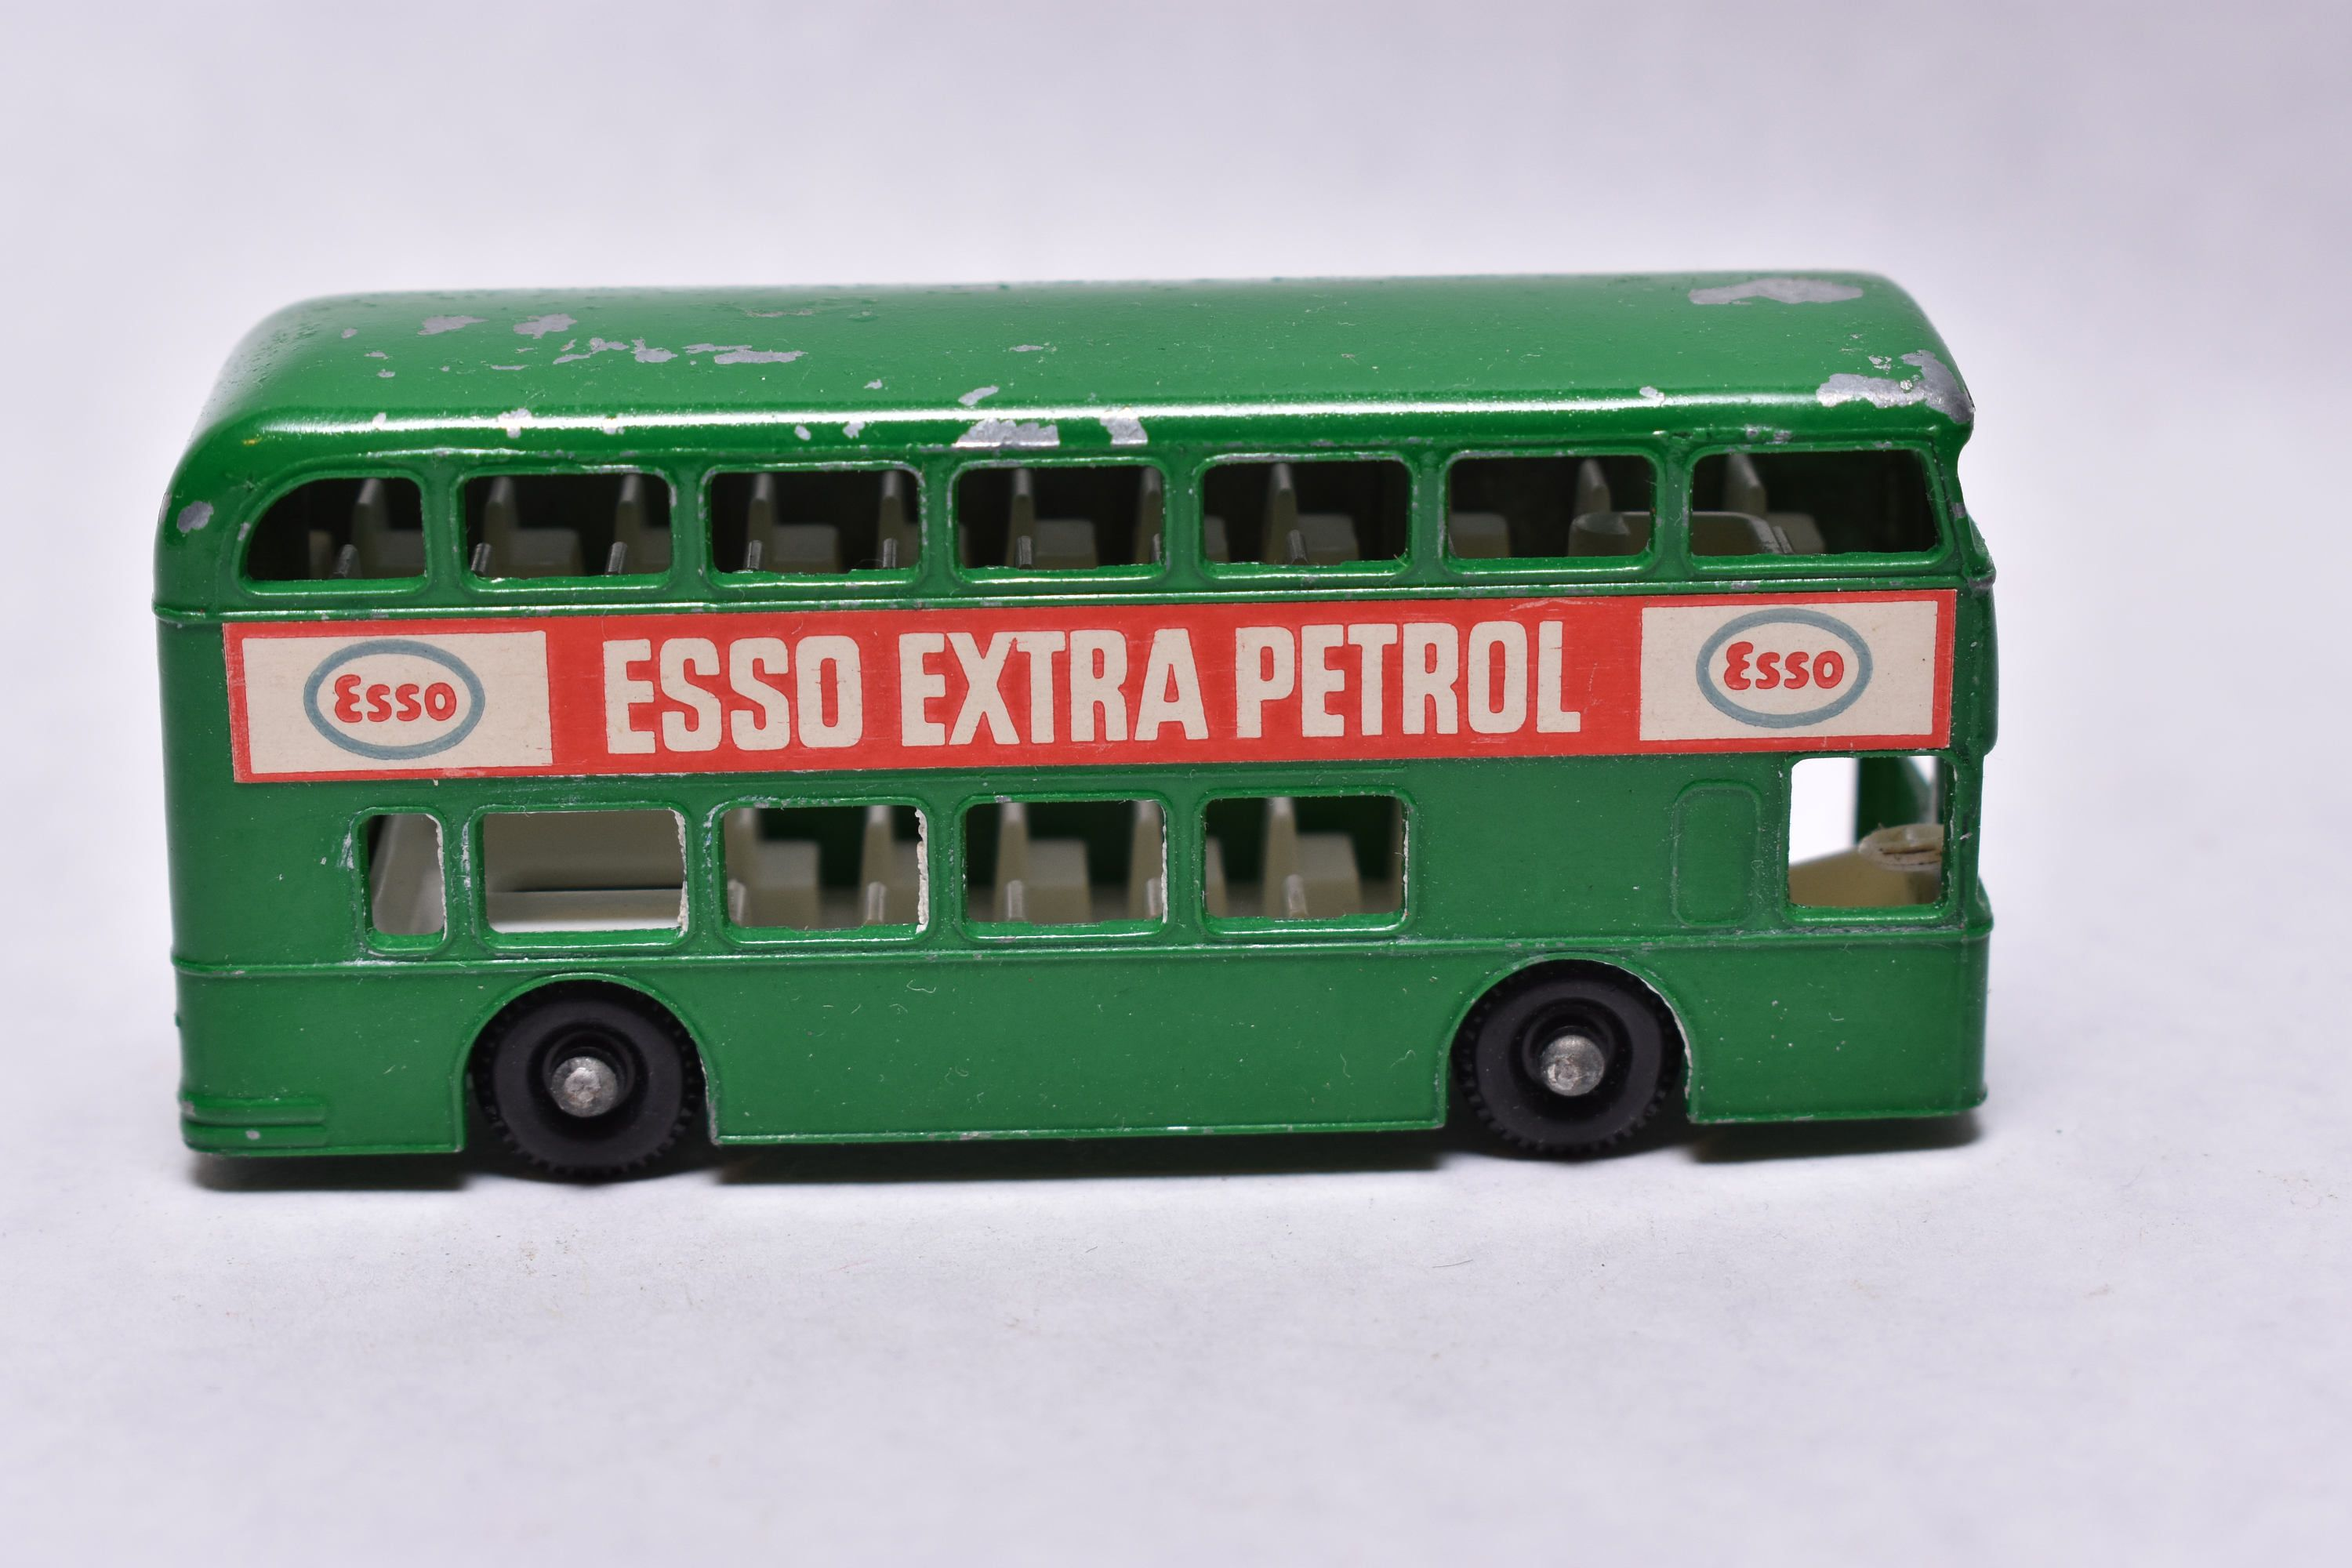 Matchbox Lesney No. 74 Daimler Bus, London Bus, Green ESSO Petrol, 1960's, made in England Original Vintage Die Cast Toy Car Collection by RememberWhenToys on Etsy